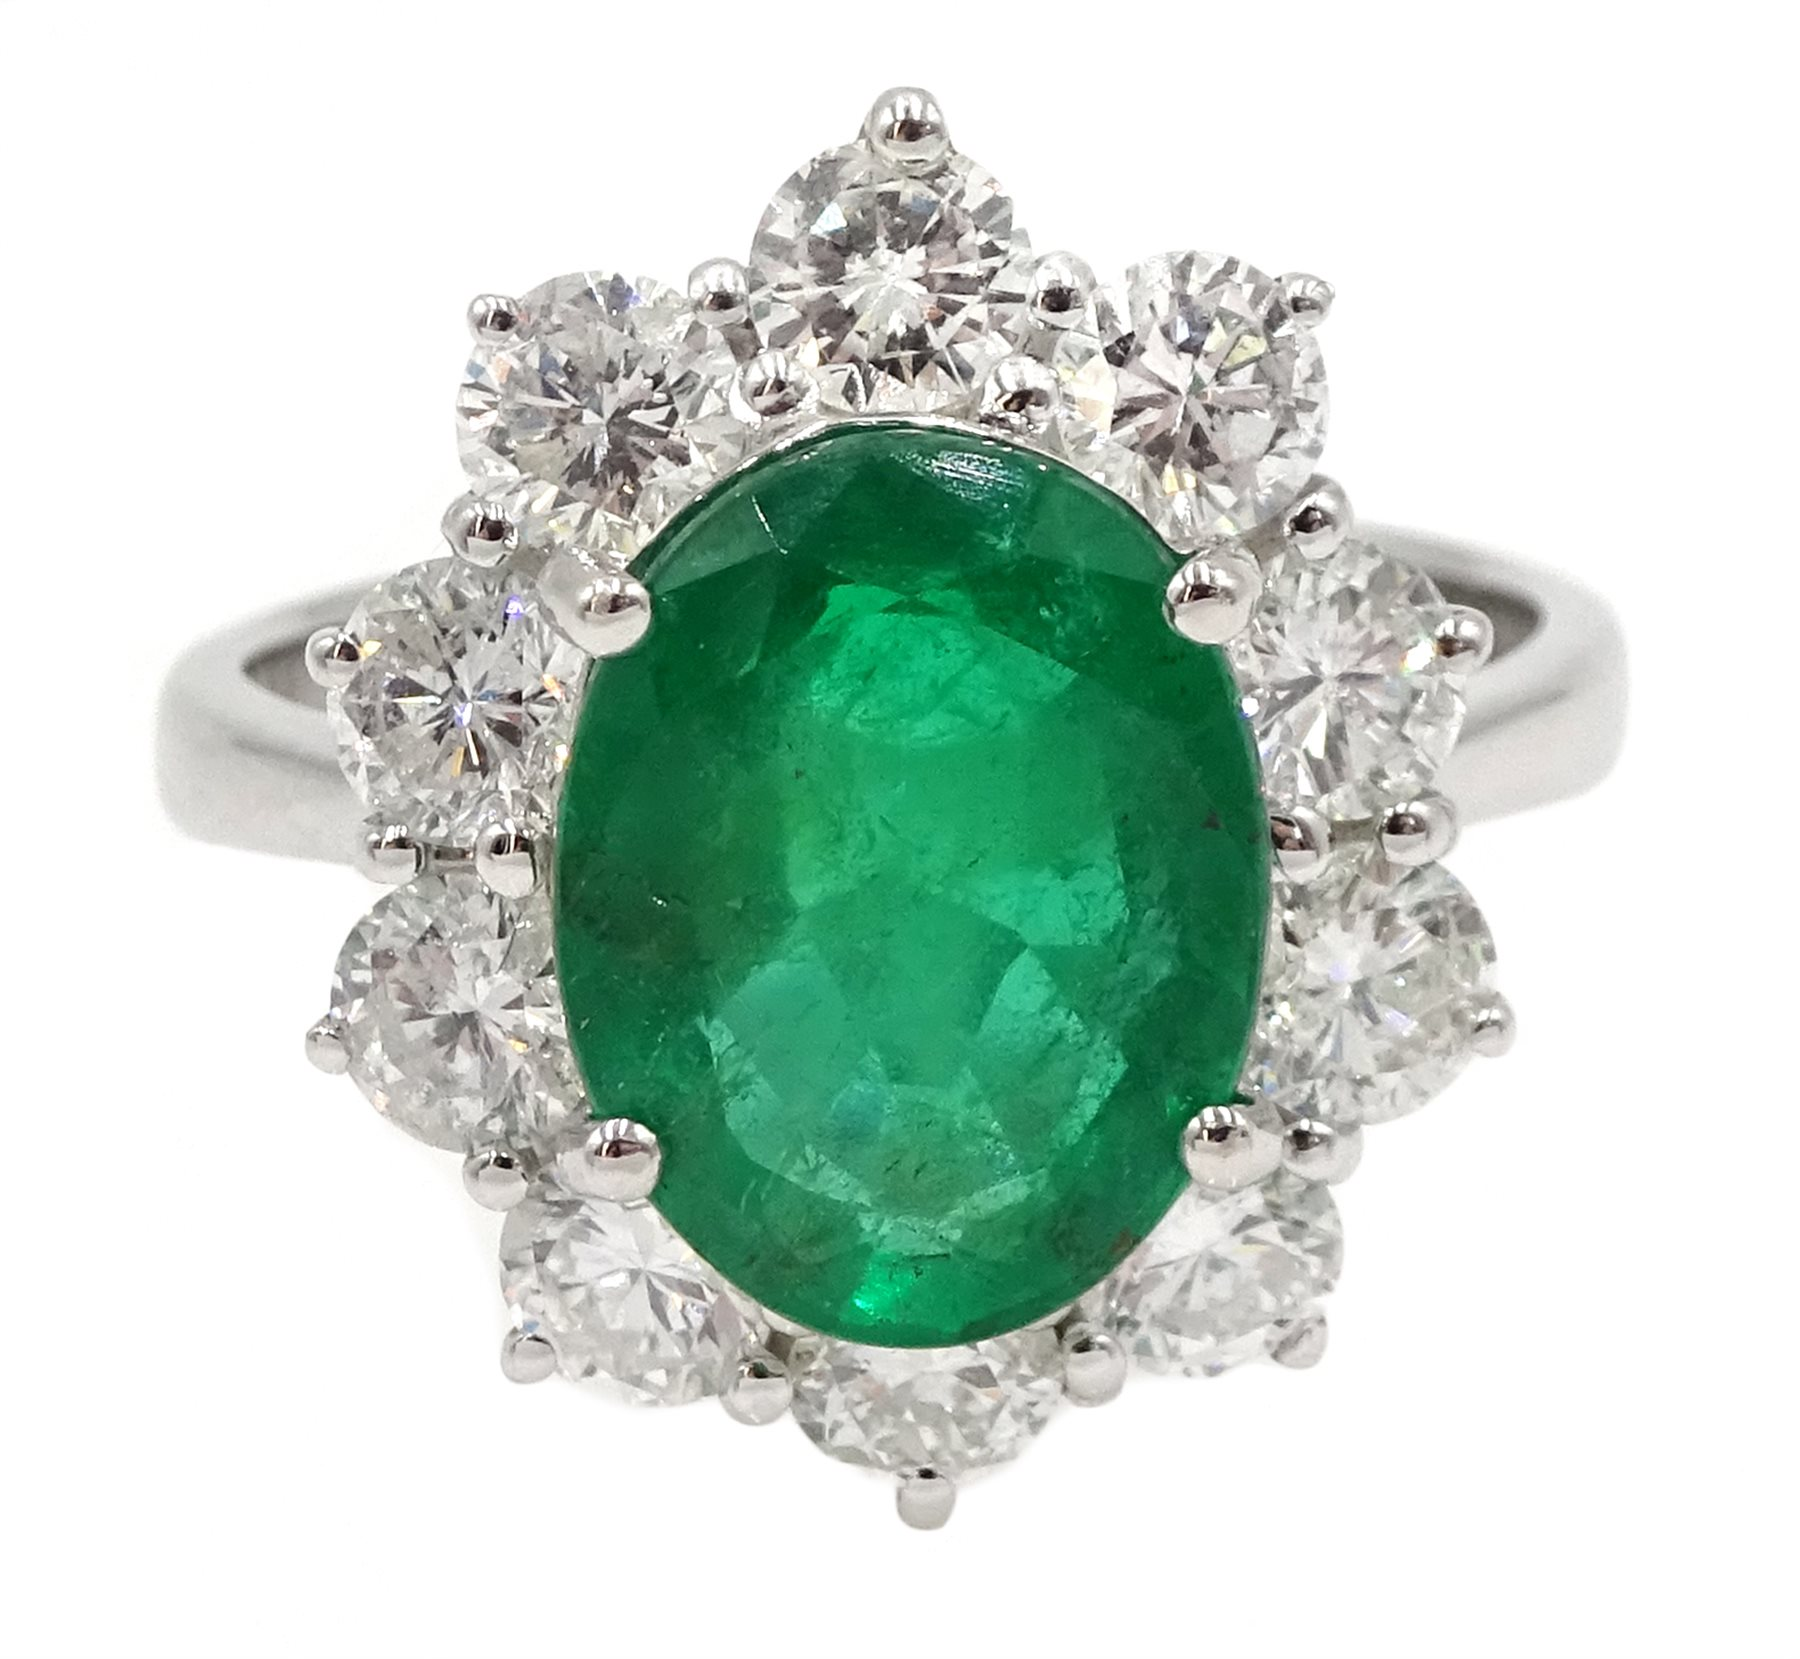 White gold oval emerald and round brilliant cut diamond ring, stamped 750, emerald approx 2.80